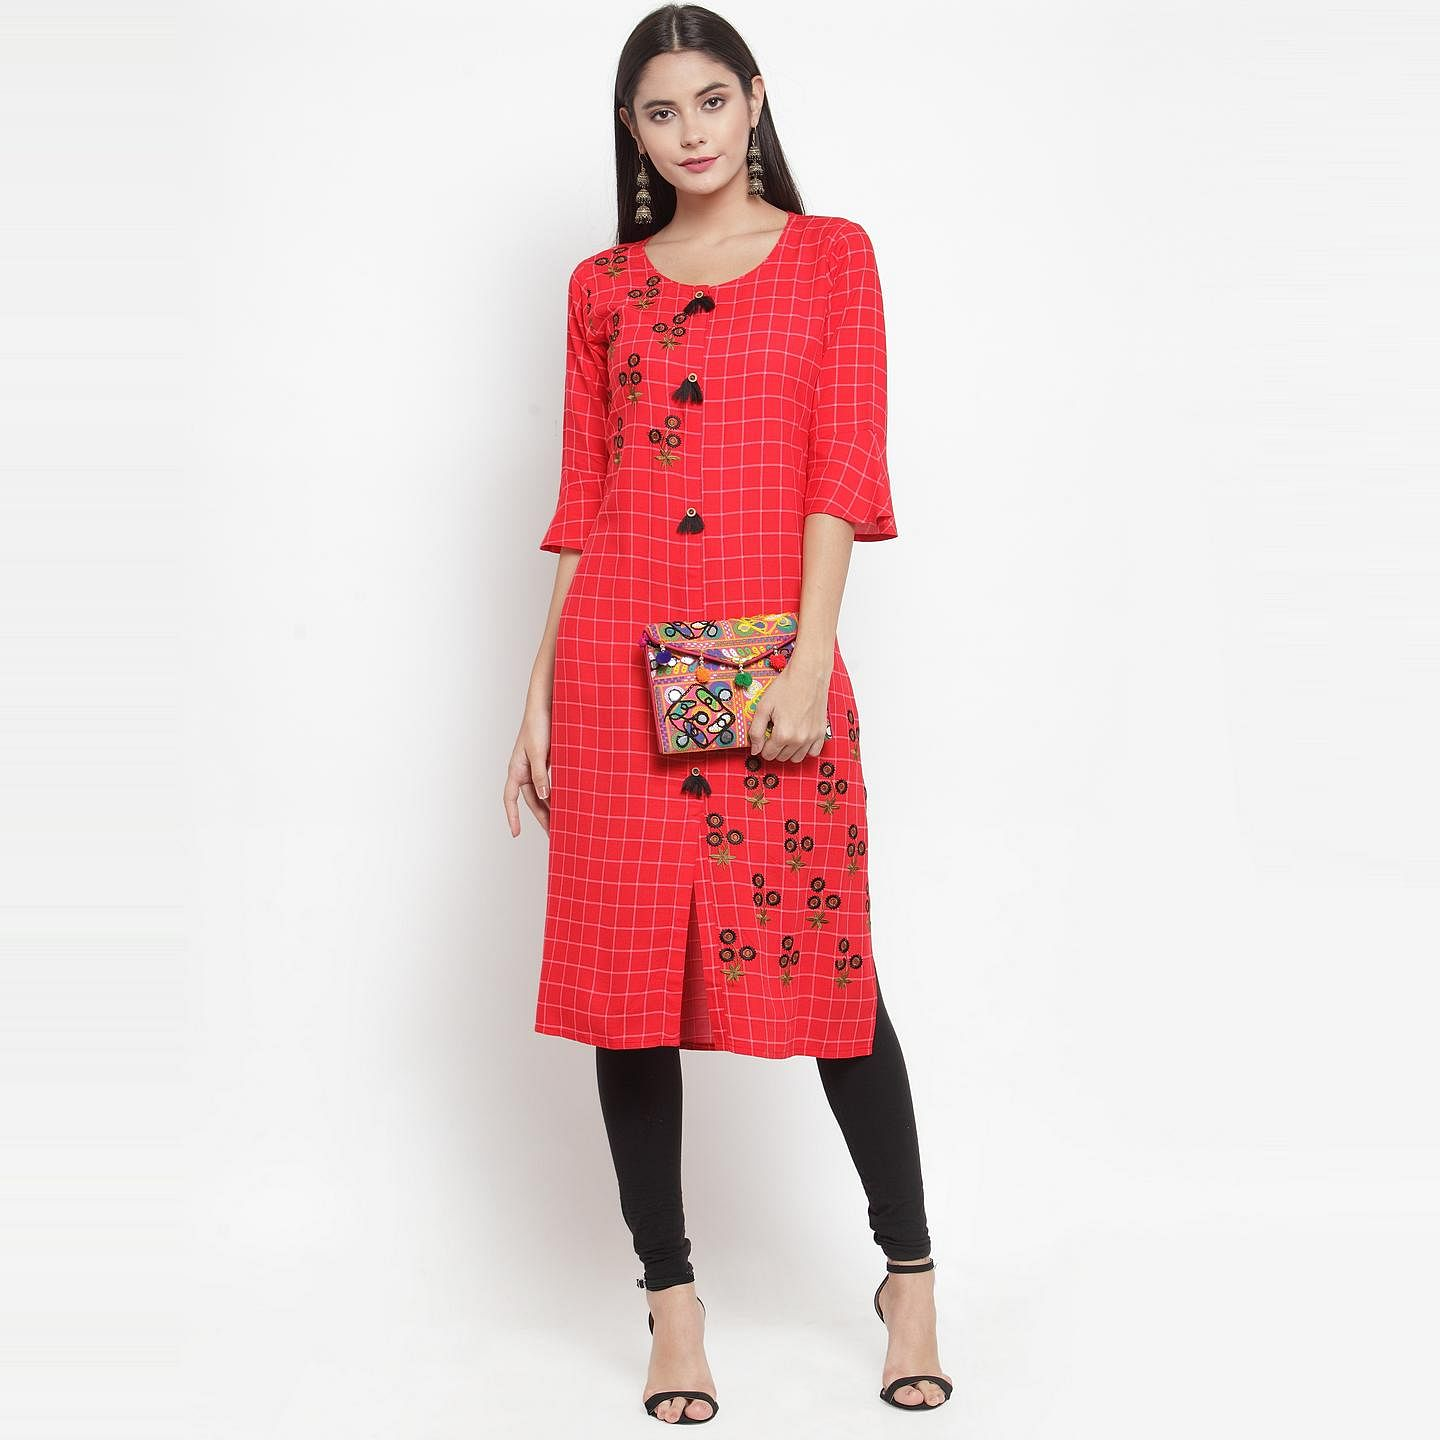 Aujjessa - Red Colored Casual Wear Embroidered Printed Rayon Kurti